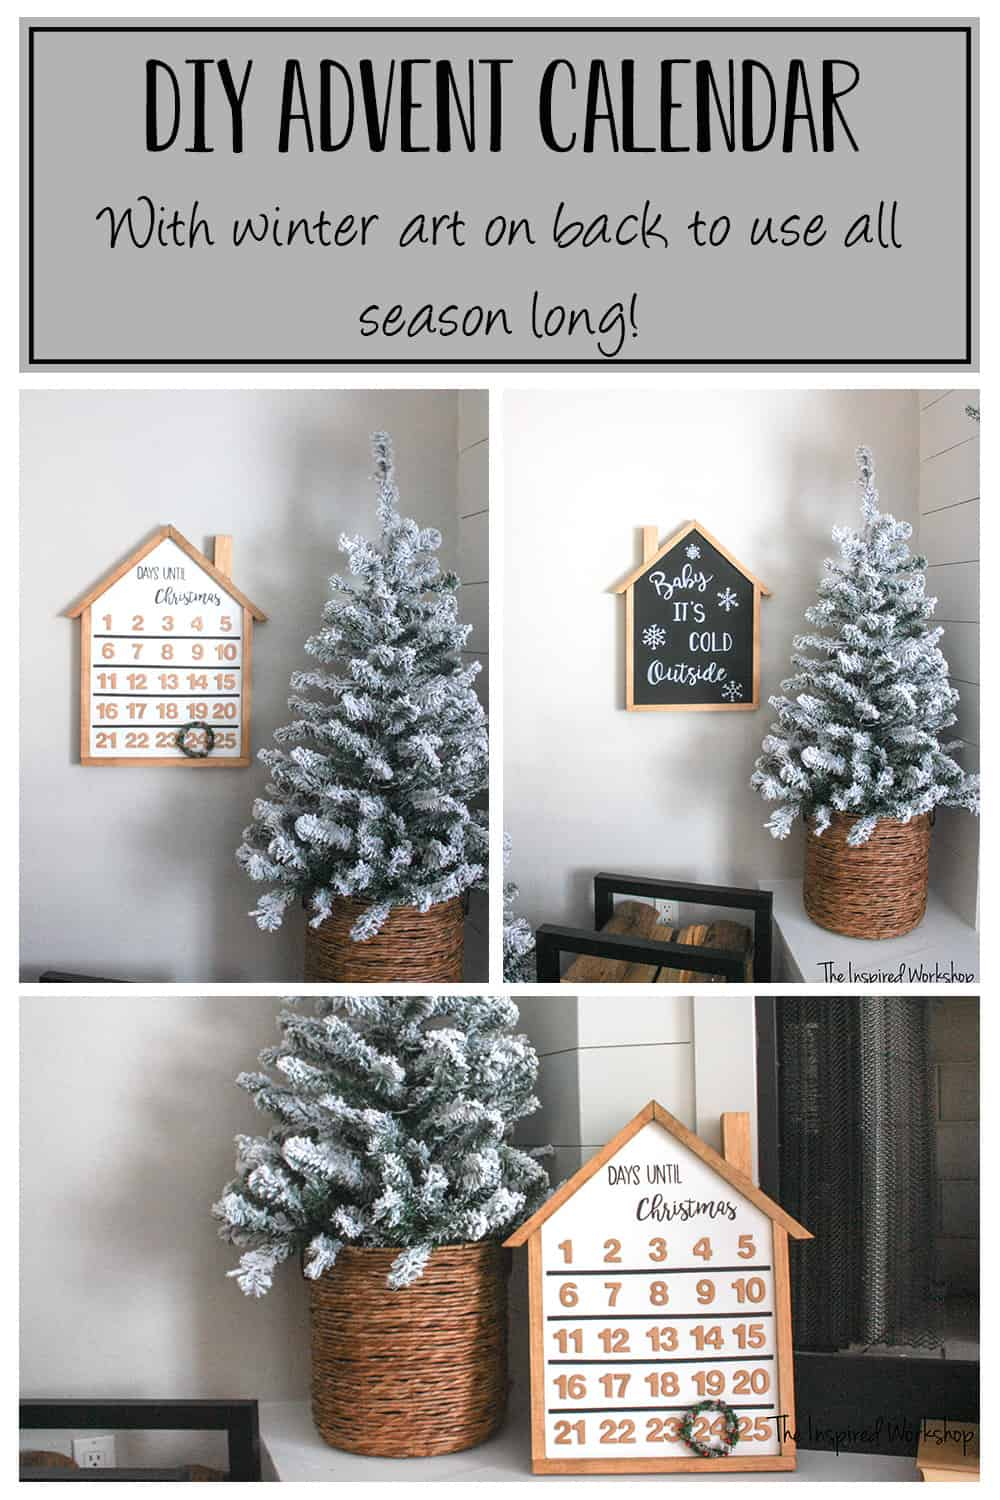 DIY Advent Calendar - With winter artwork on back to use all season long!